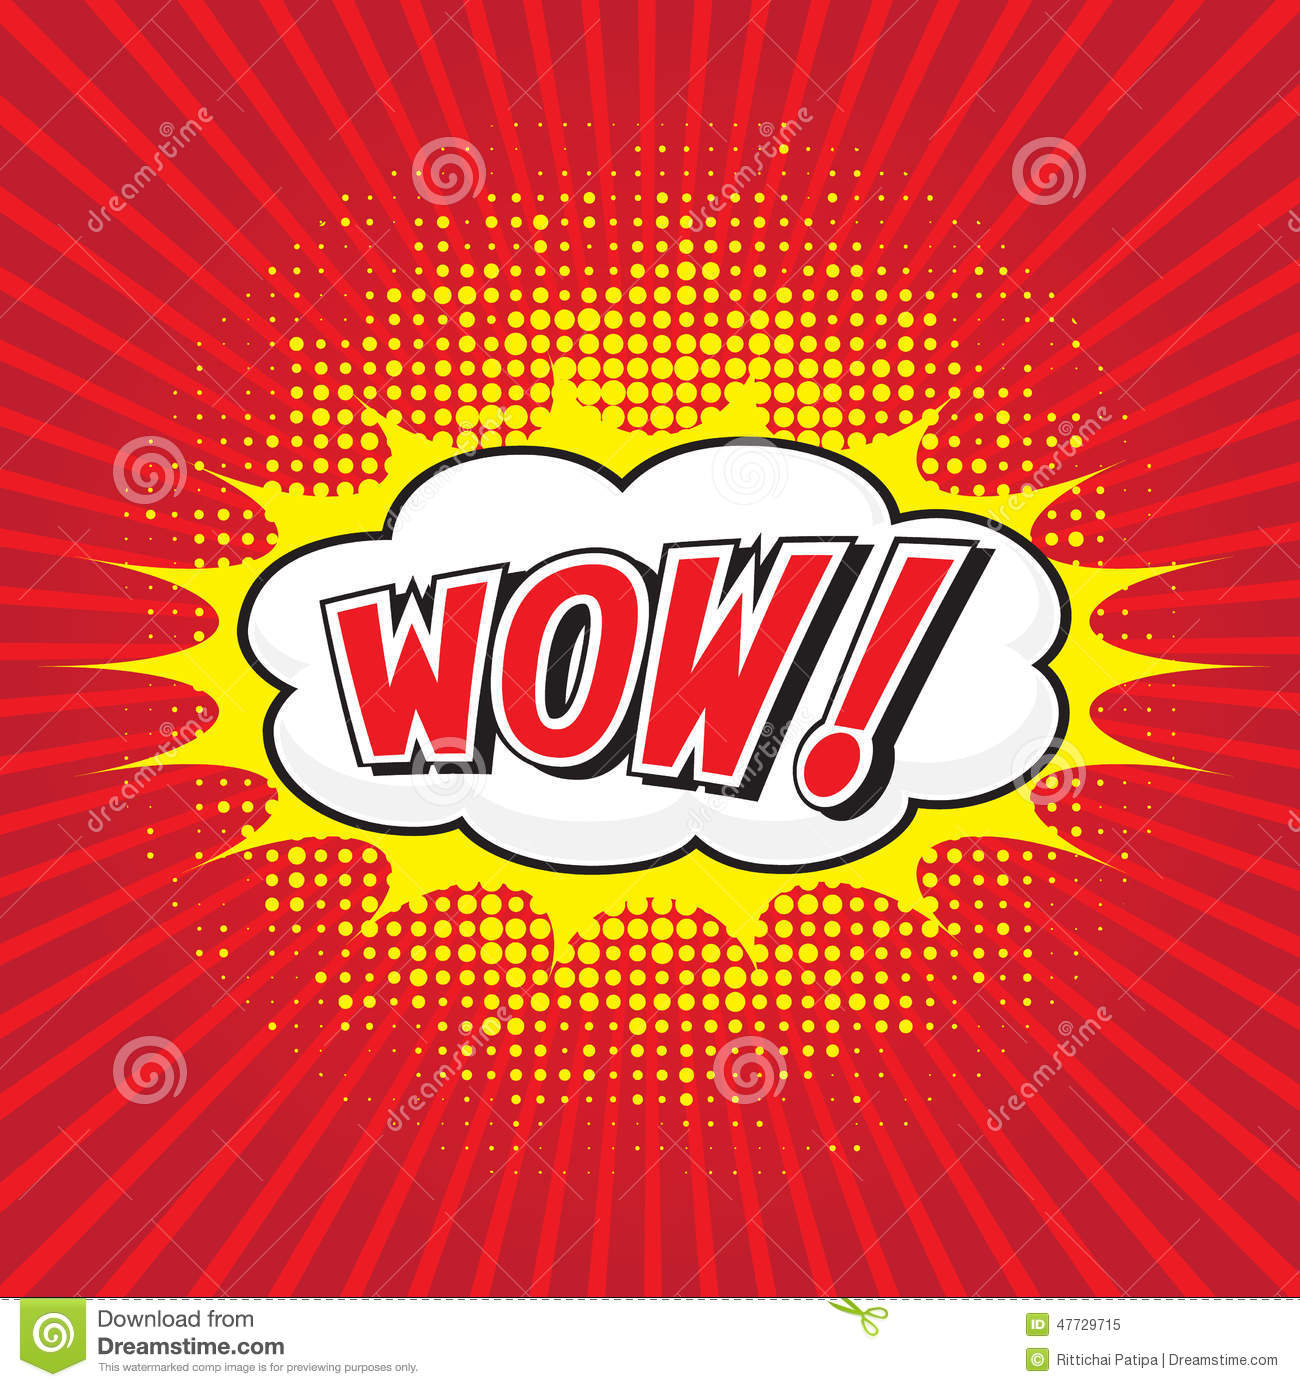 WOW! Comic Word Stock Vector - Image: 47729715: www.dreamstime.com/stock-illustration-wow-comic-word-speech-bubble...